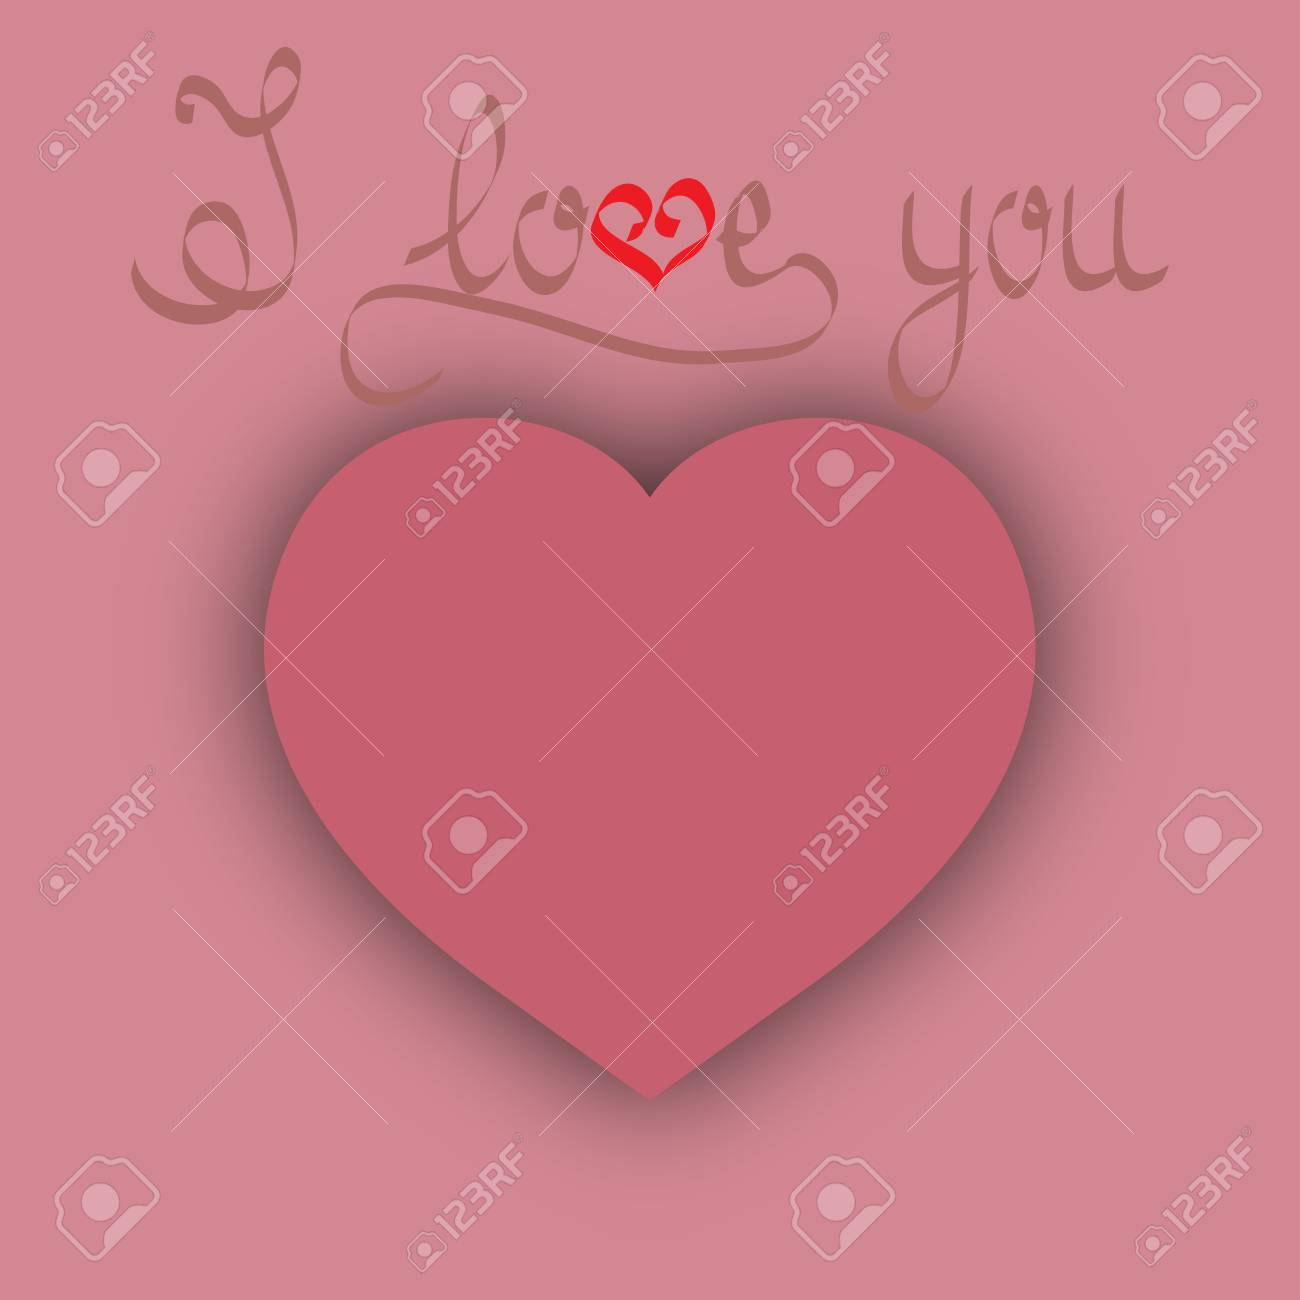 Heart With Quote I Love You. Pink Sign On Pink Background. Romantic Symbol  Linked